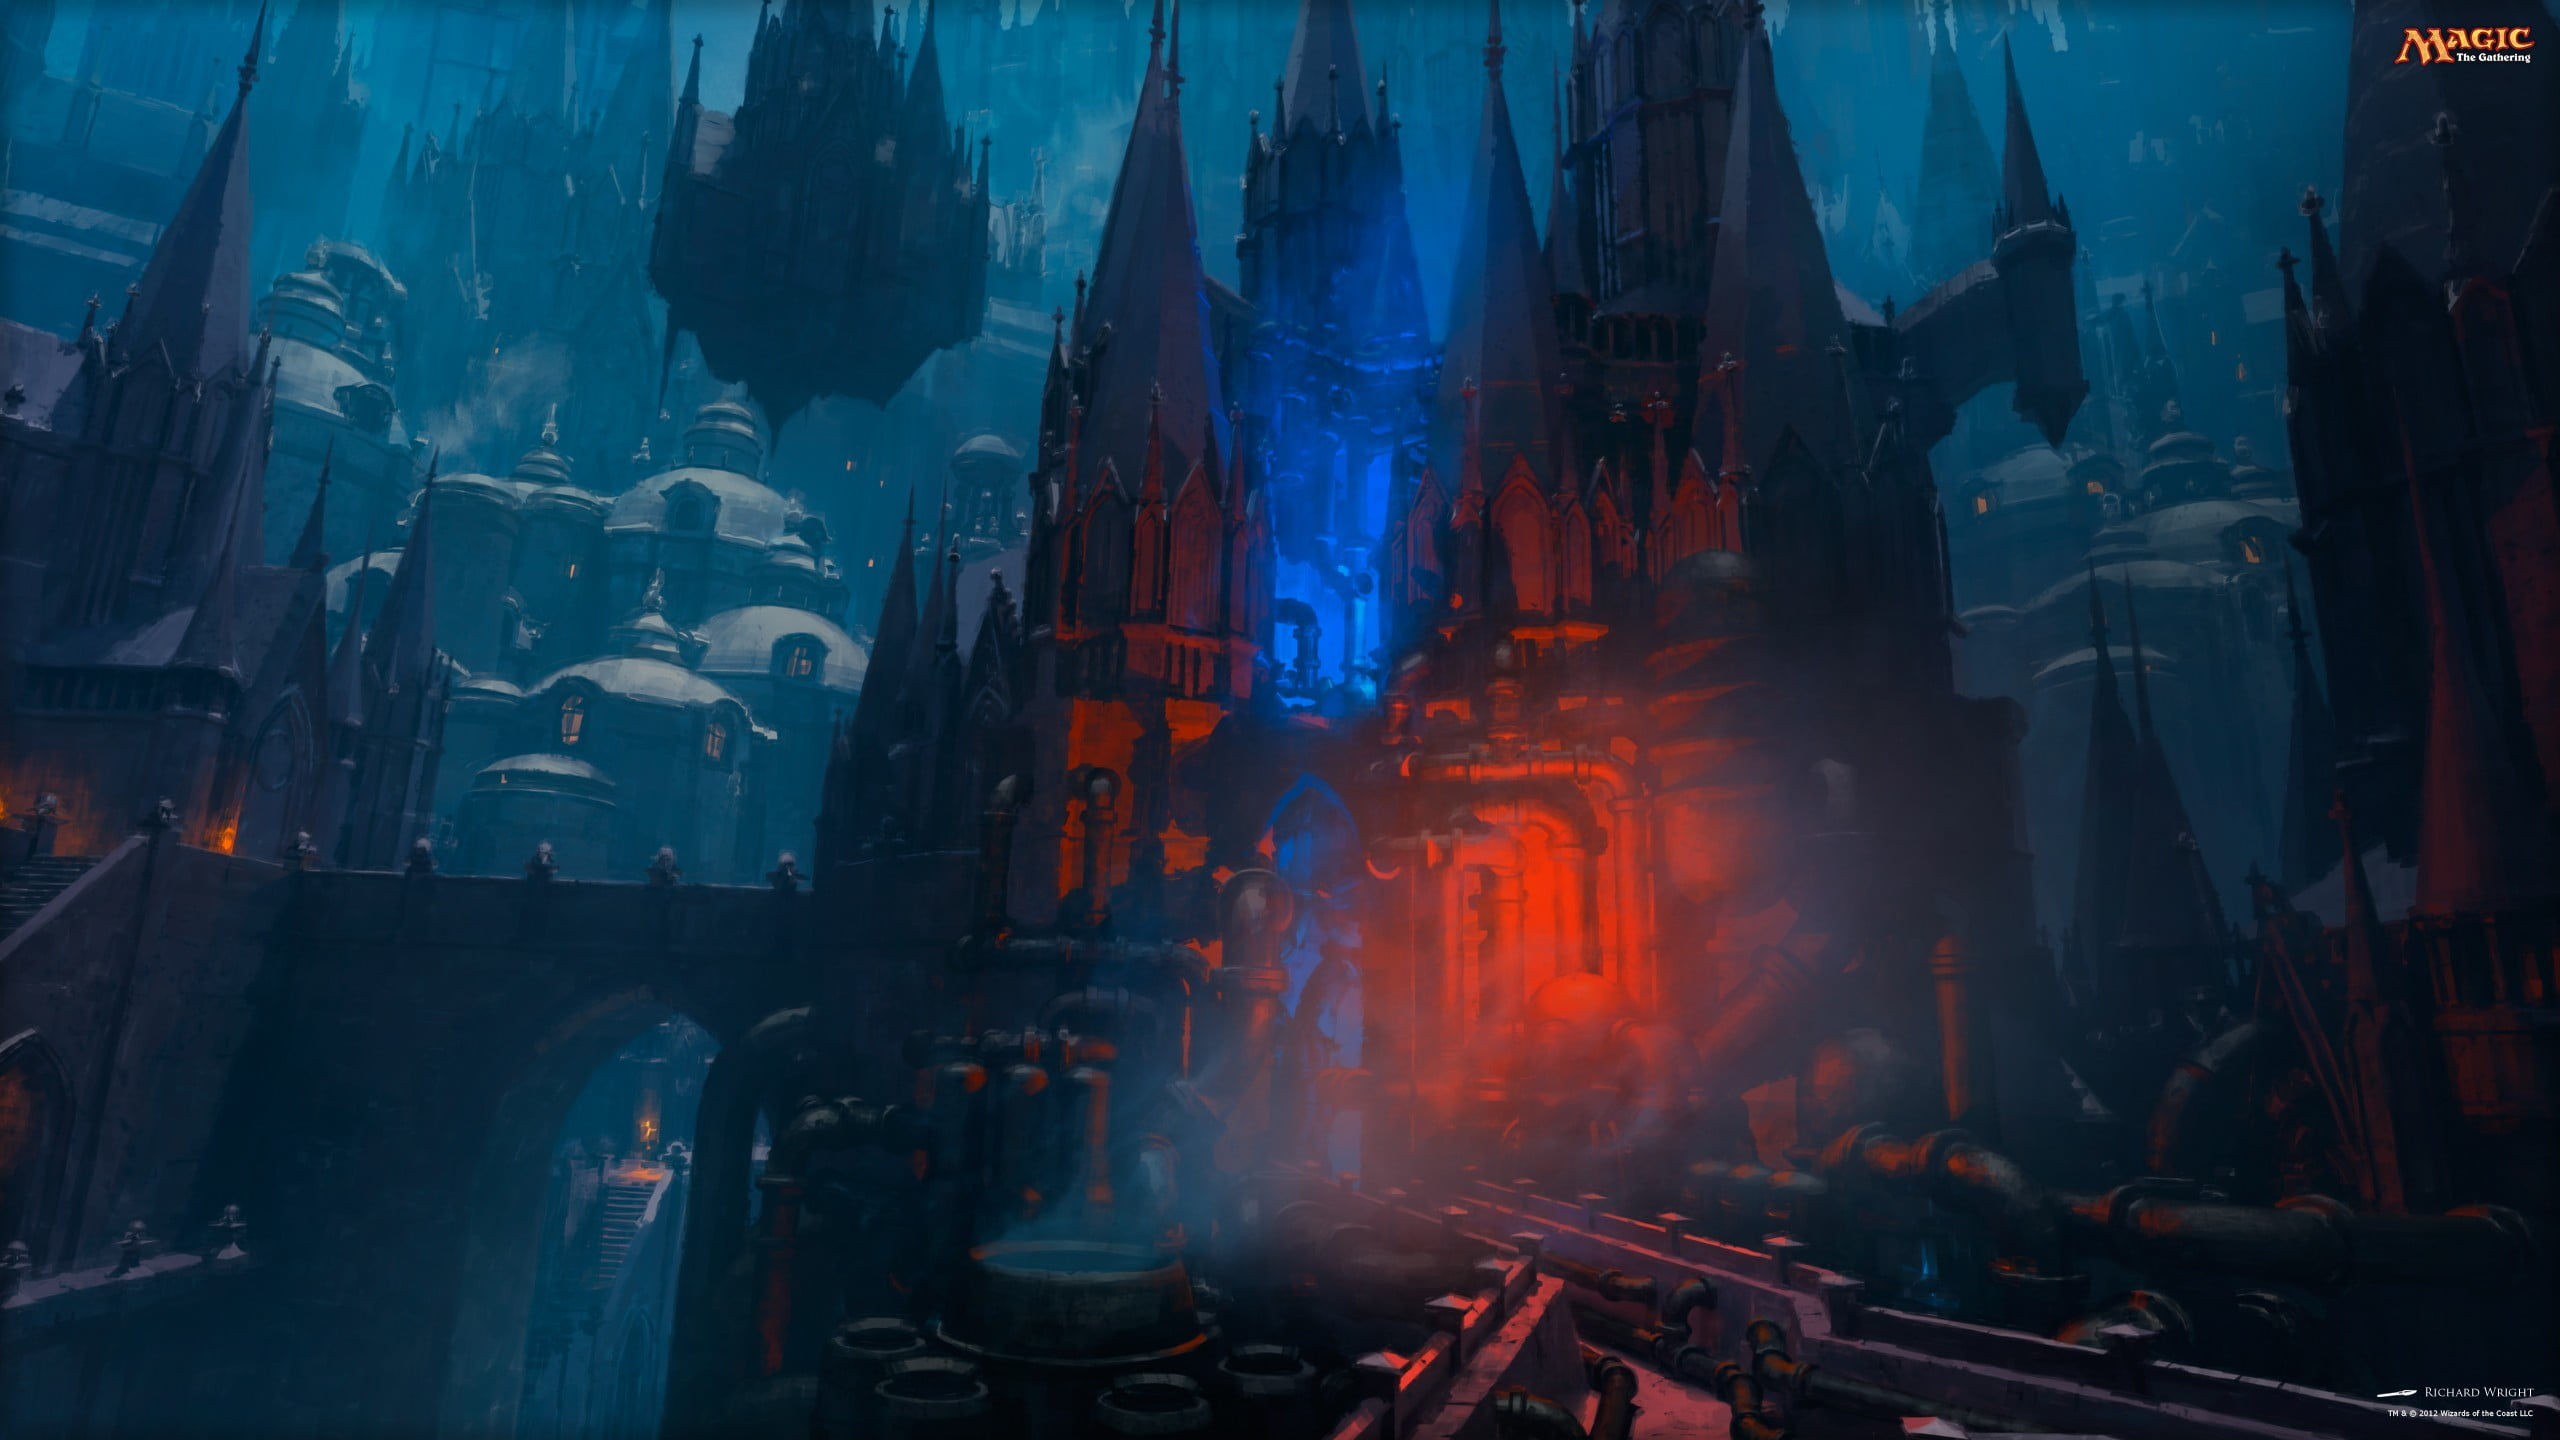 Red and black castle wallpaper Magic The Gathering Izzet town 2560x1440